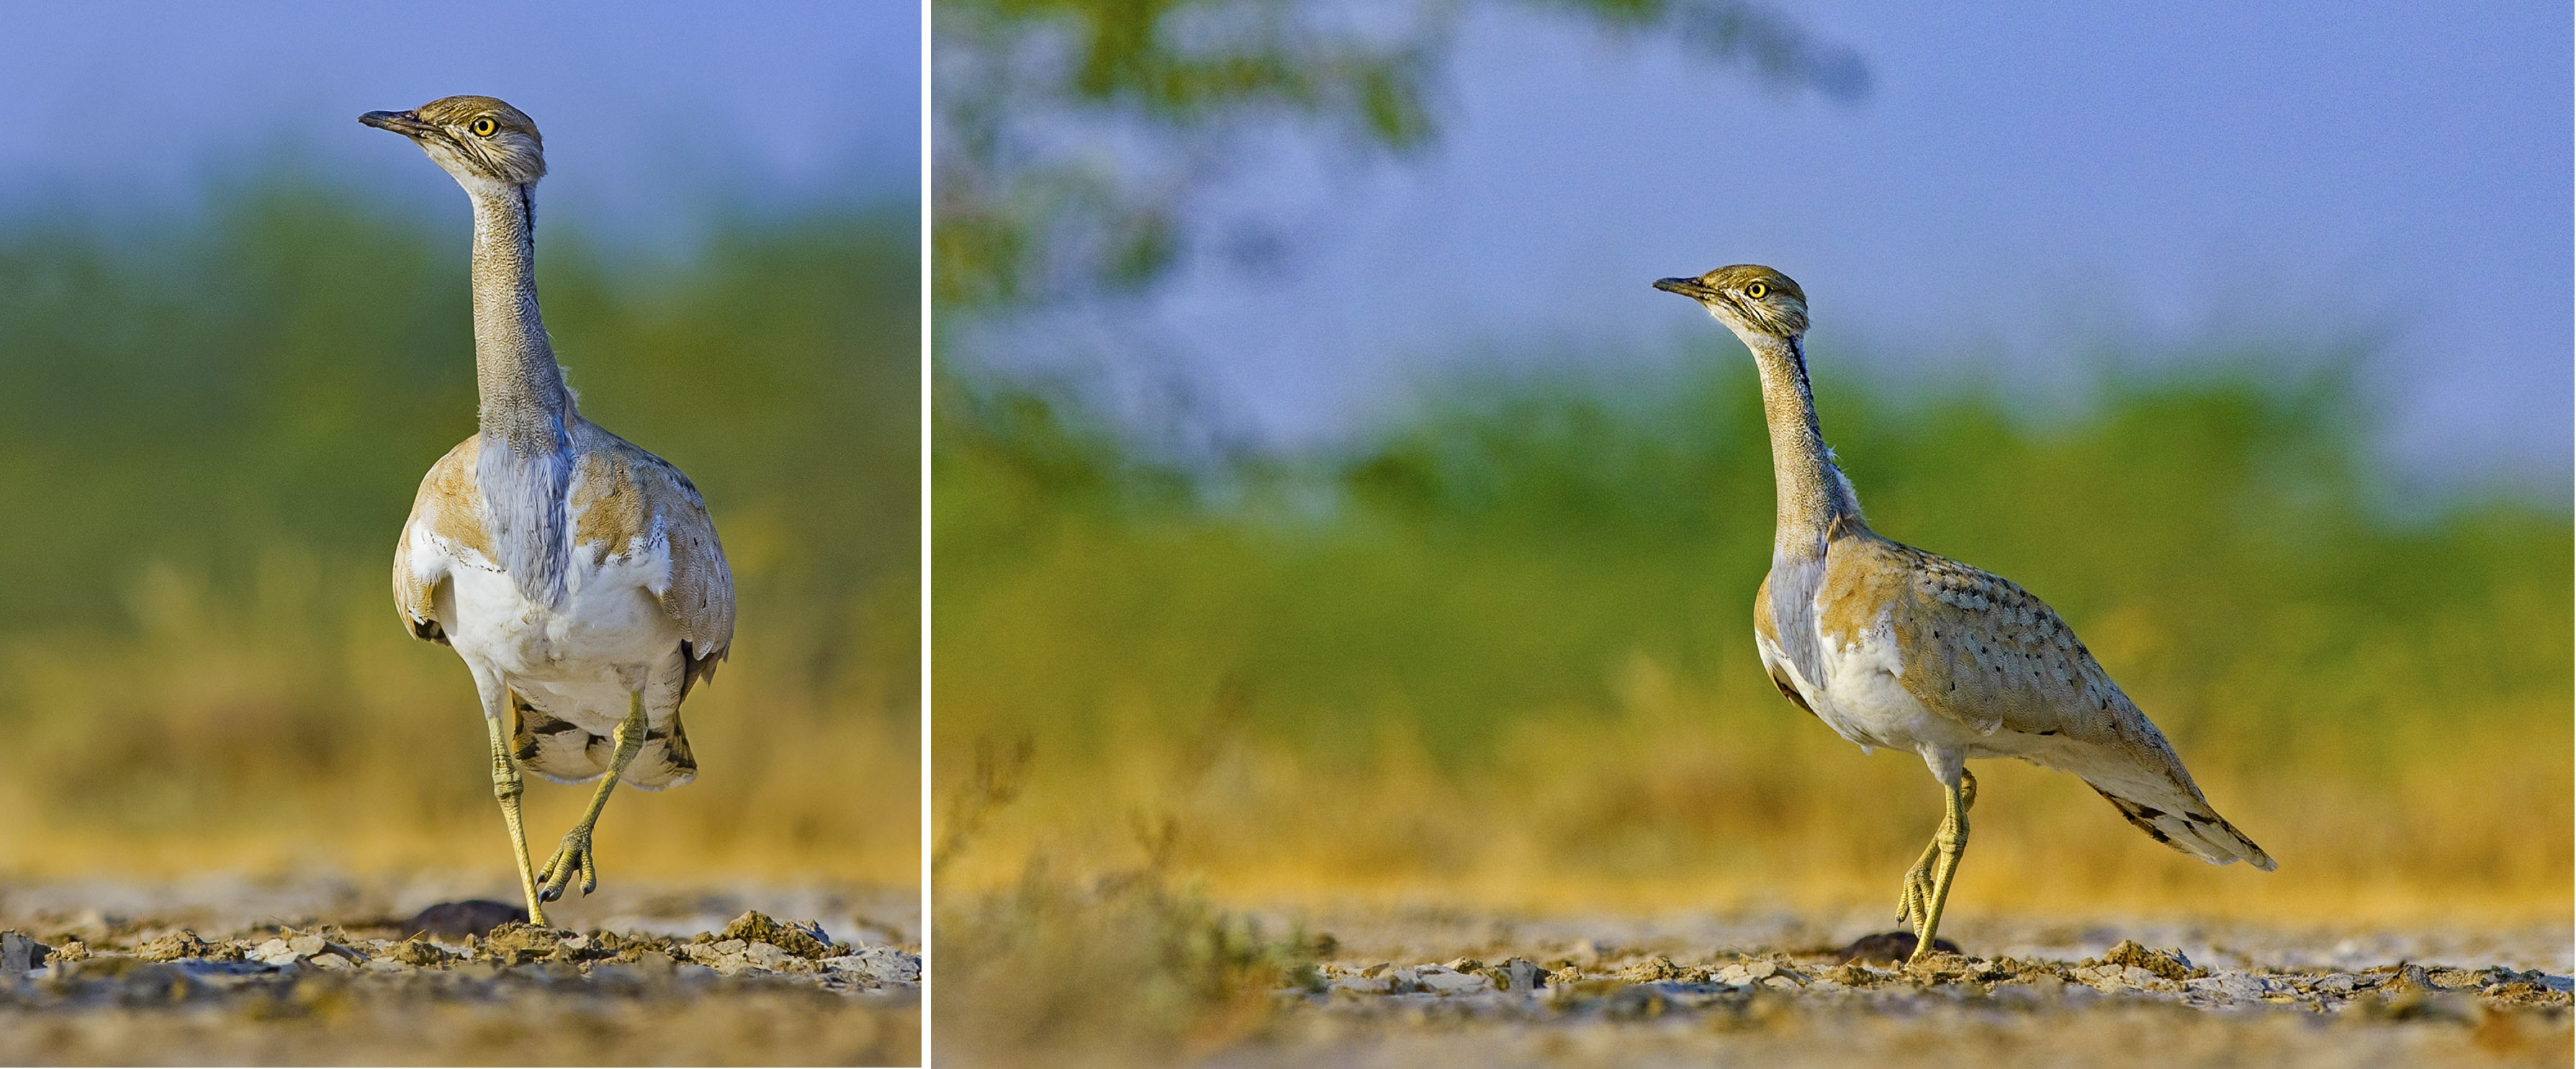 At a glance the MacQueen's bustard looks rather plain, but come mating season, the male, extends its neck and flares its otherwise unnoticeable neck feathers, to look like a fluffy collar, and struts around the landscape. Photos: Dhritiman Mukherjee  The MacQueen's bustard travels to India to breed in semi-arid deserts, especially in dry grasslands with a few scattered shrubs. This bird  was photographed in the Rann of Kutch. Cover photo: Dhritiman Mukherjee